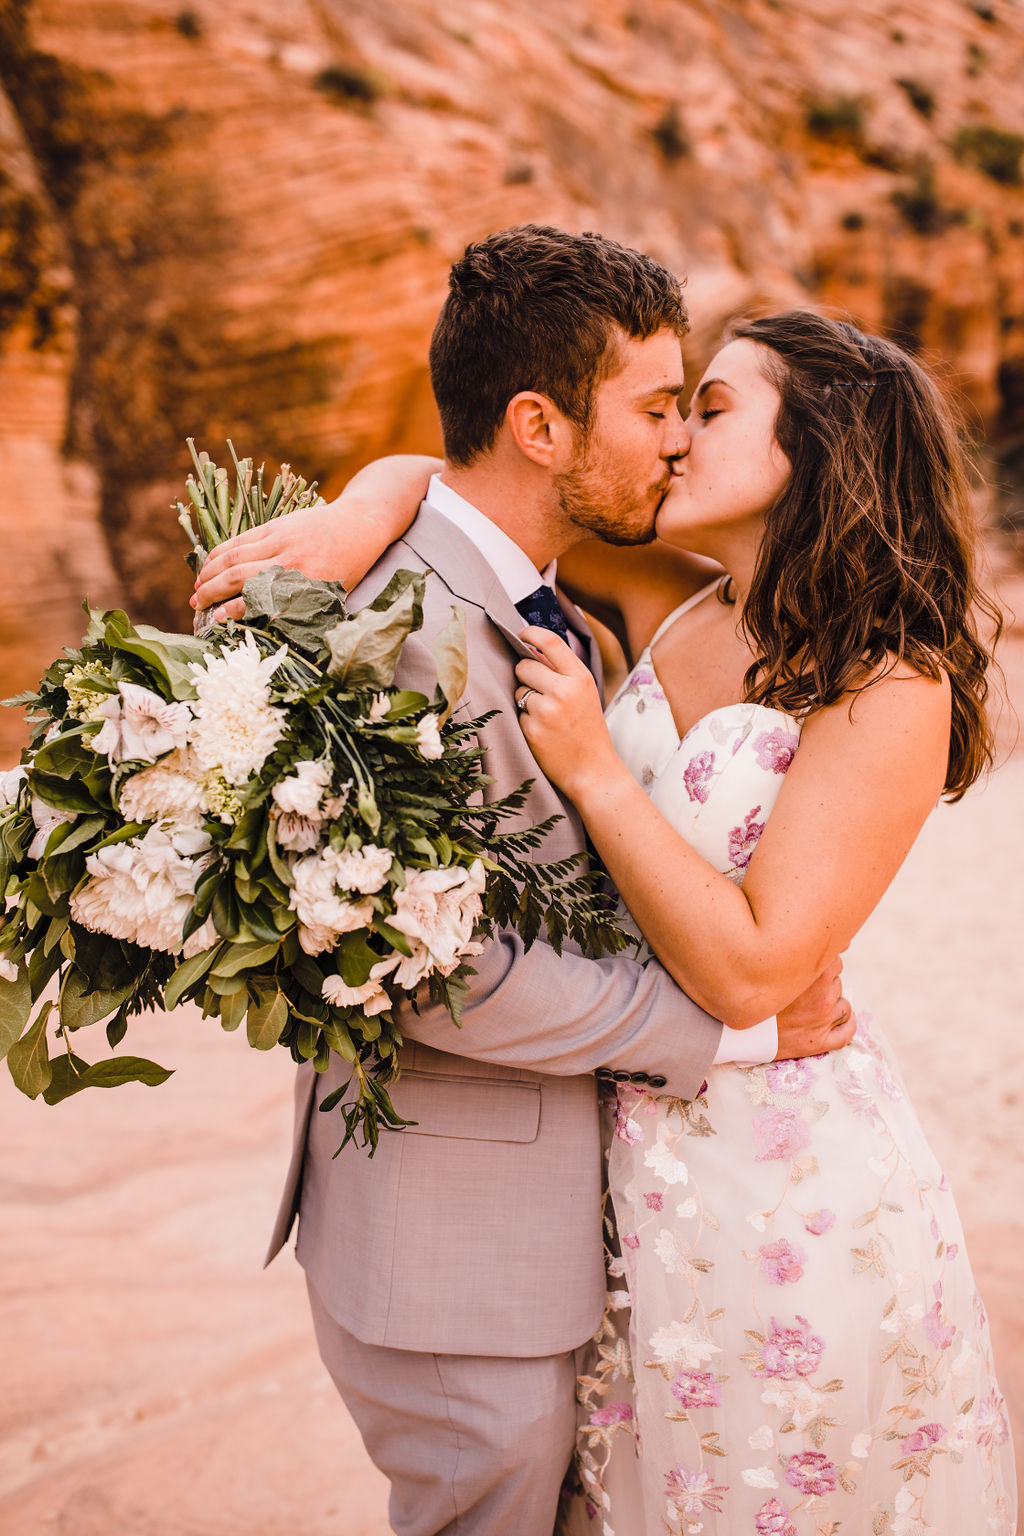 professional page arizona formal photographer pink floral wedding dress white bouquet kissing red rocks horseshoe bend